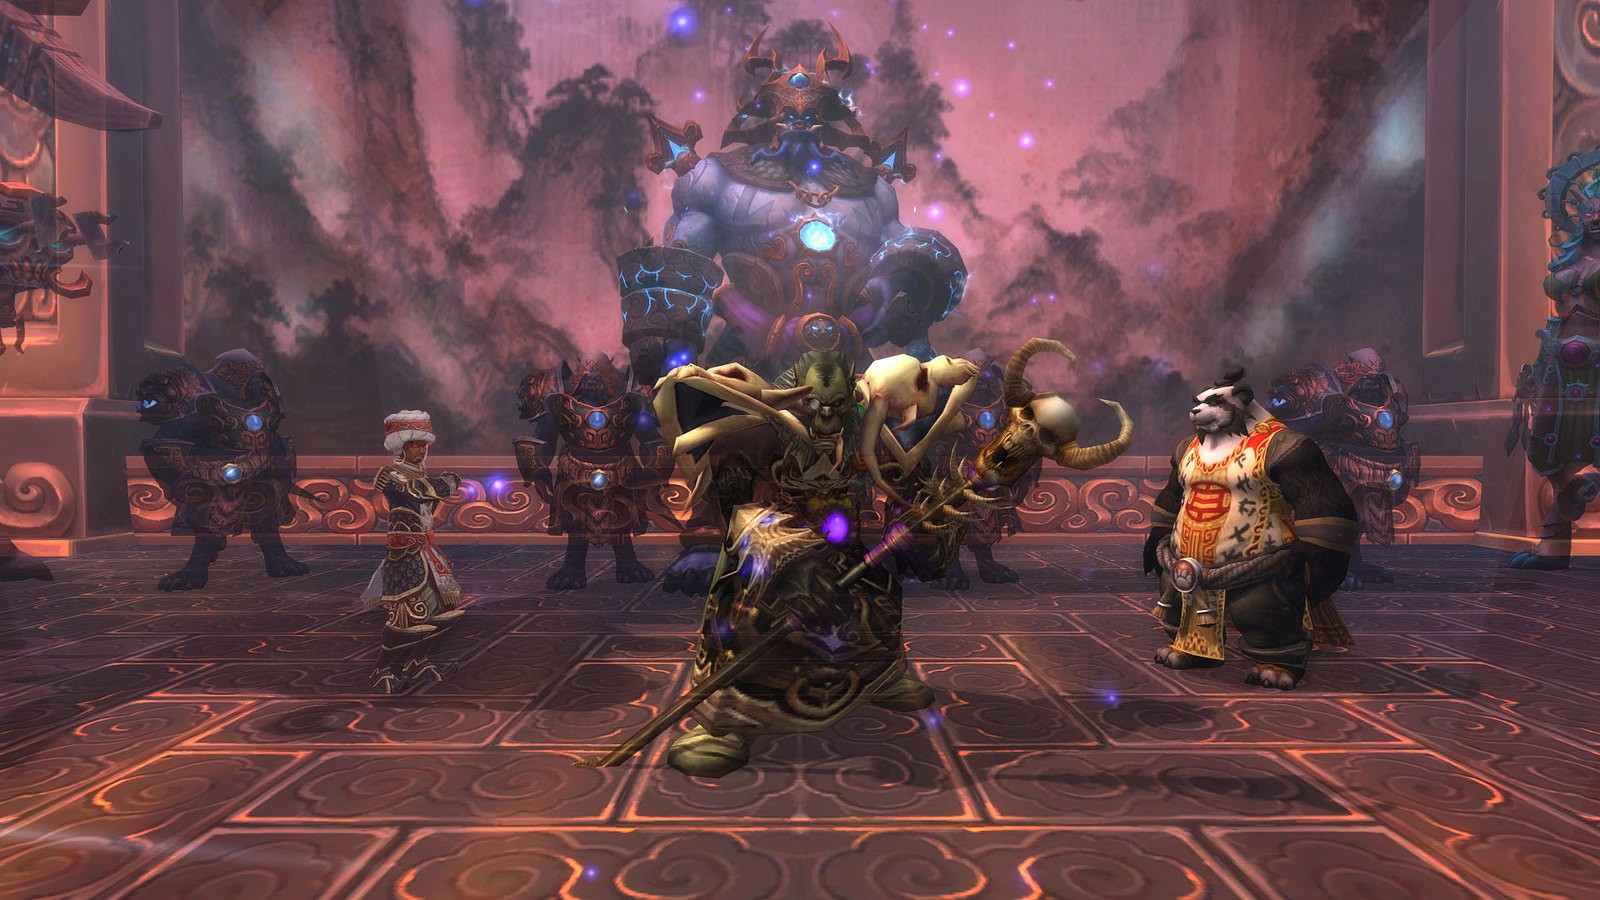 Blizzard Already Has Ideas for Next World of Warcraft